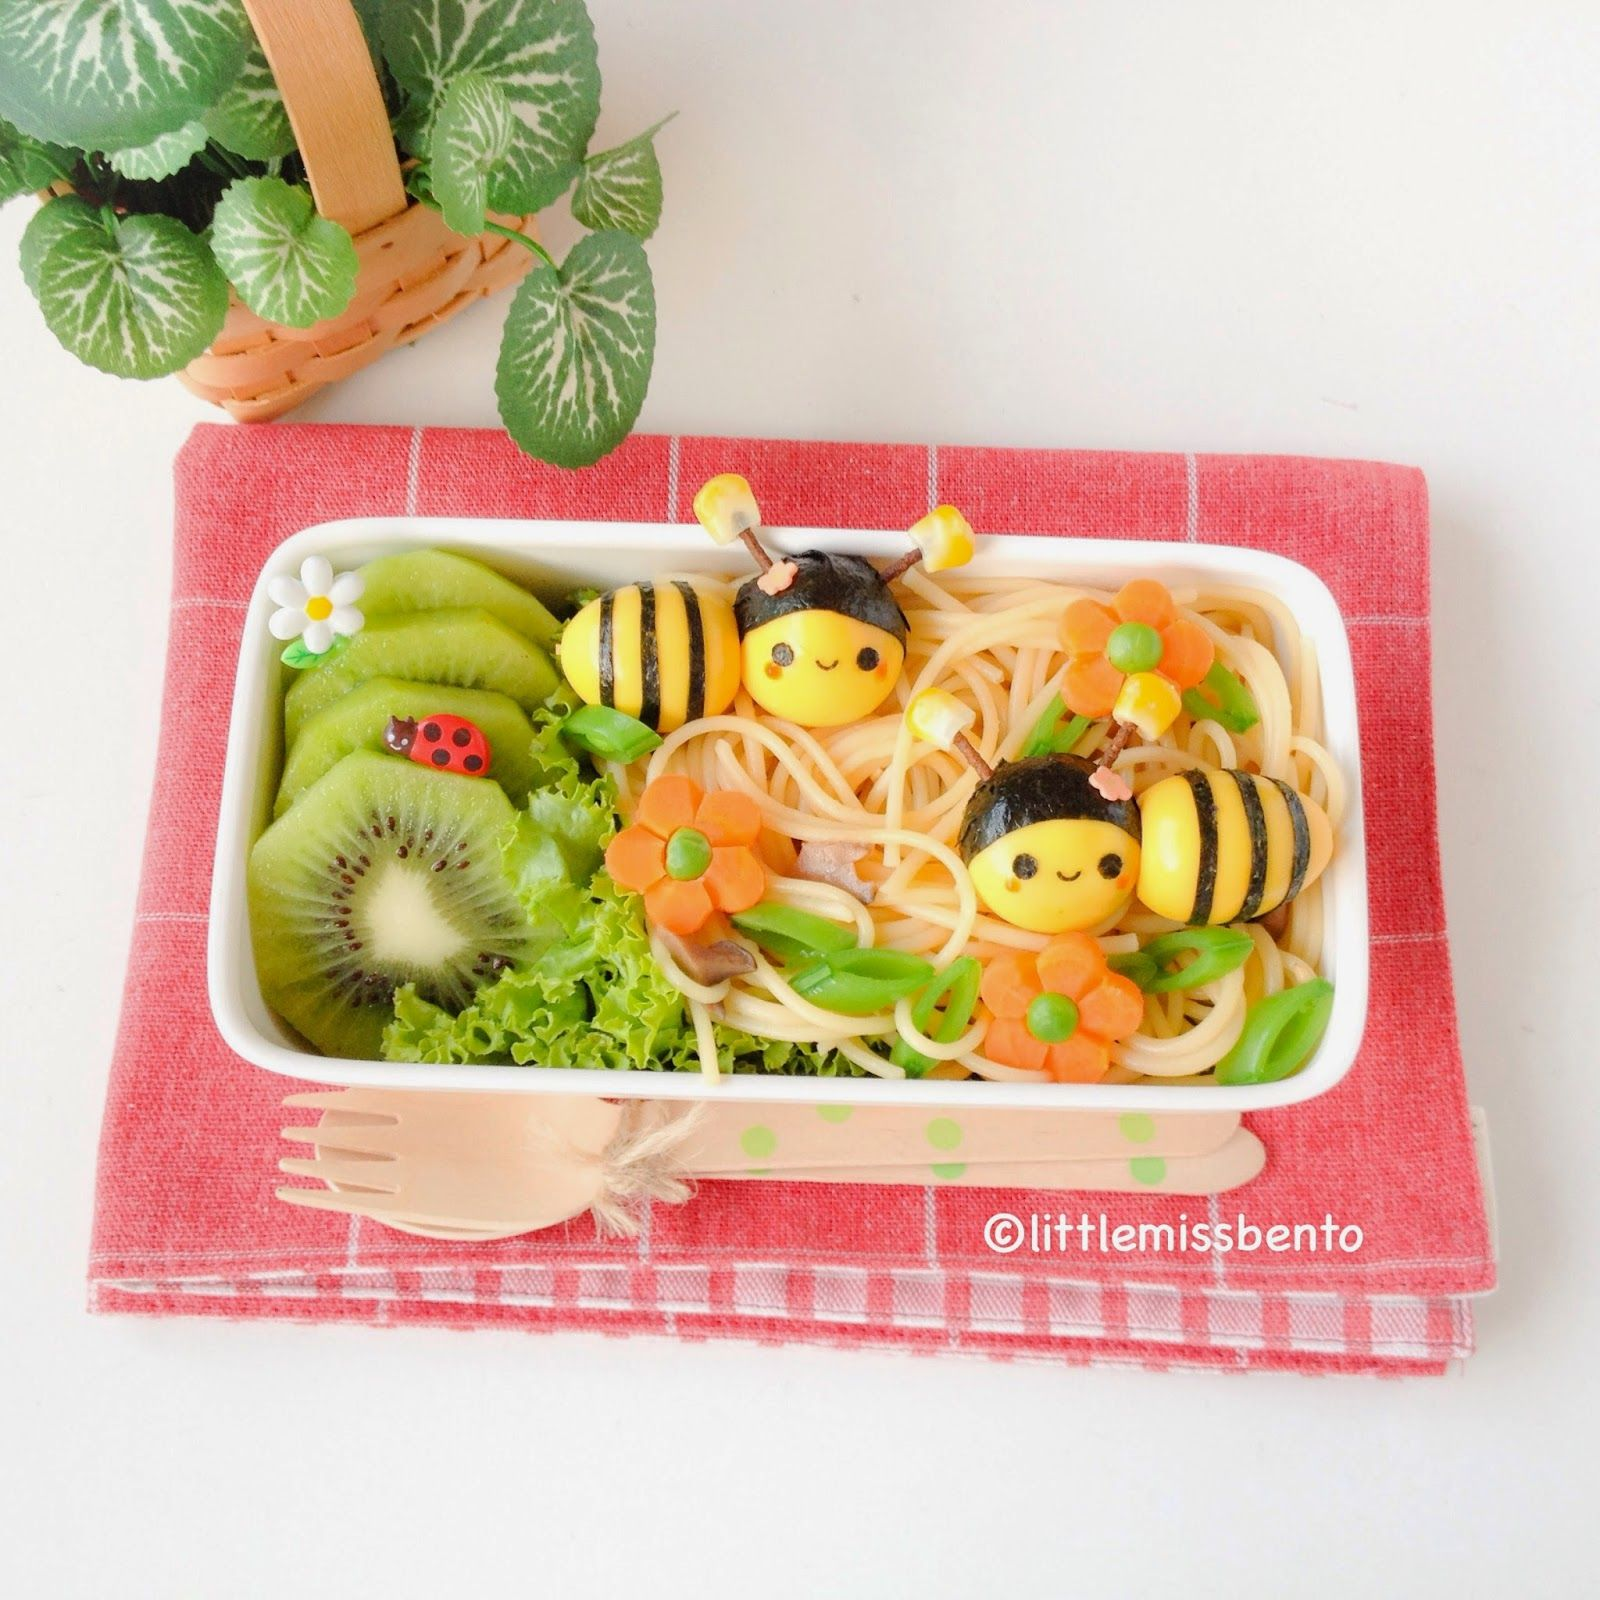 Bumblebee quail egg bento by Little Miss Bento